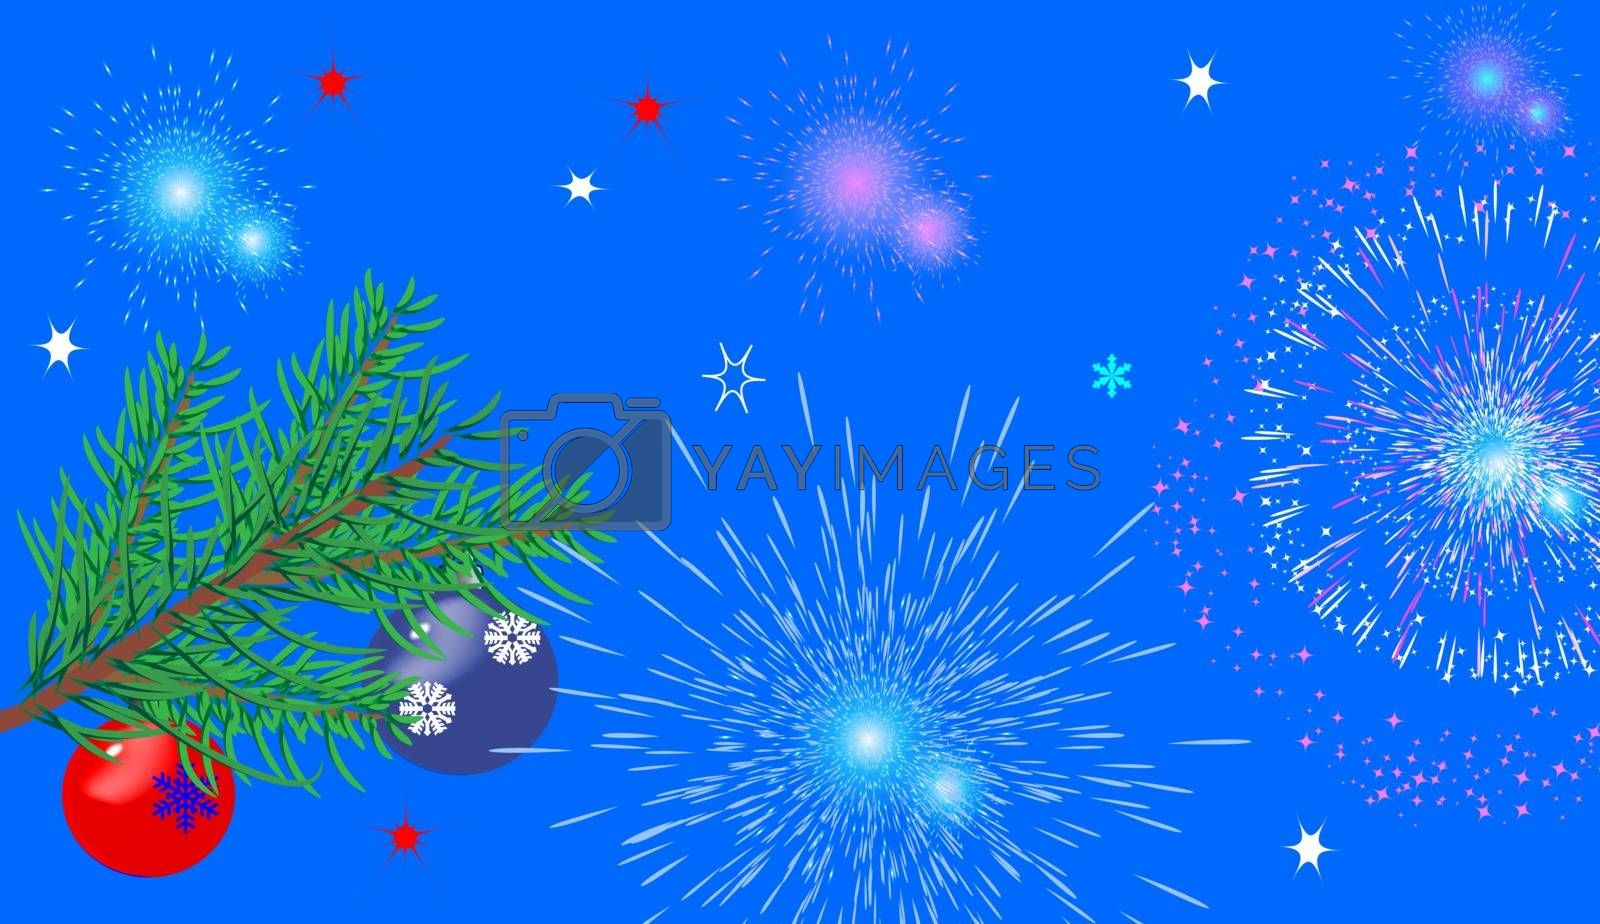 Christmas background with fir branches, toys and fireworks